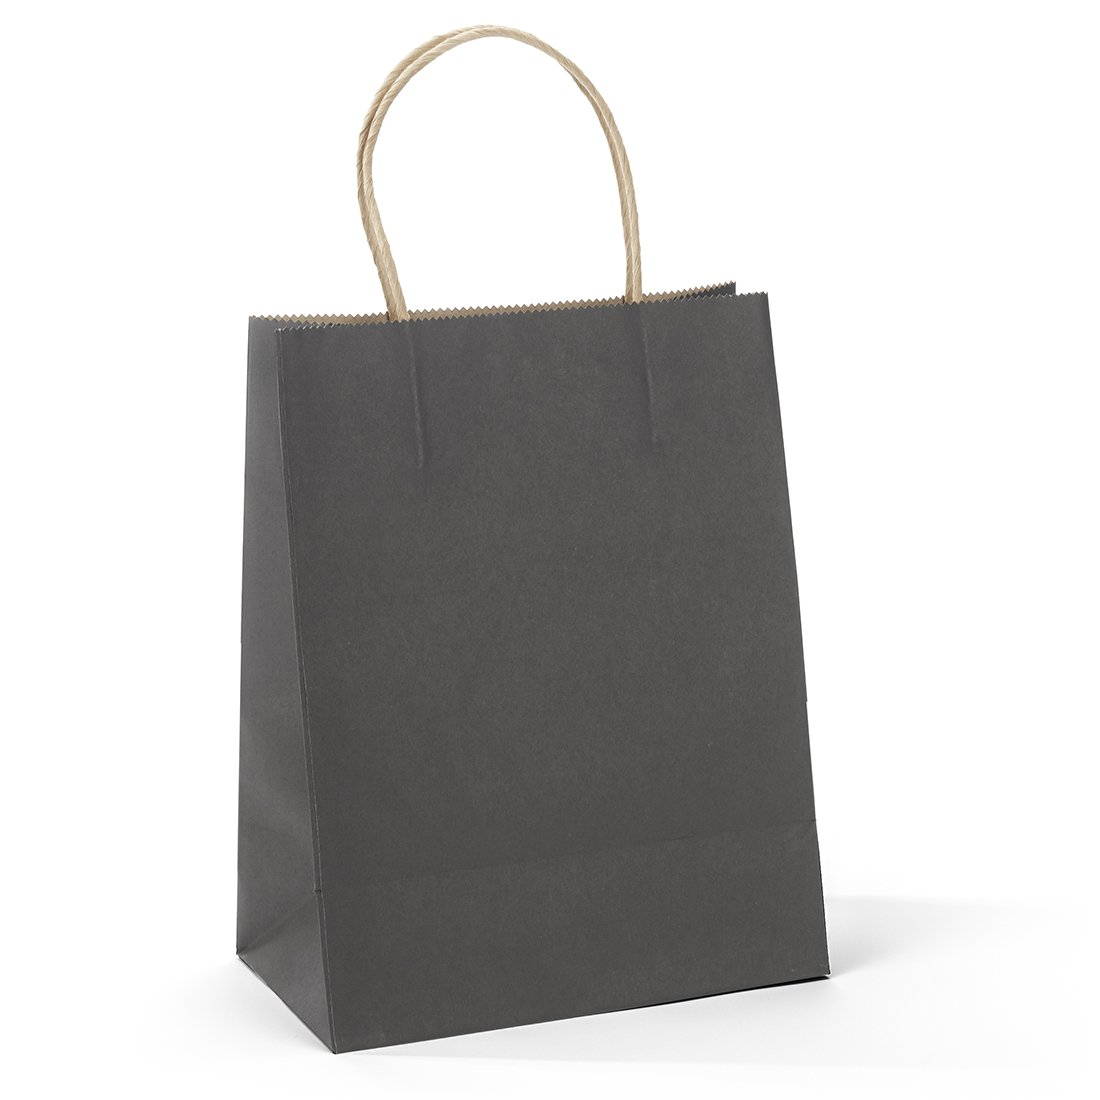 Halulu 50 Pcs 10x5x13 Inches Kraft Paper Bags Handle Shopping Bags Merchandise and Retail Bags Gift Bags (Black)